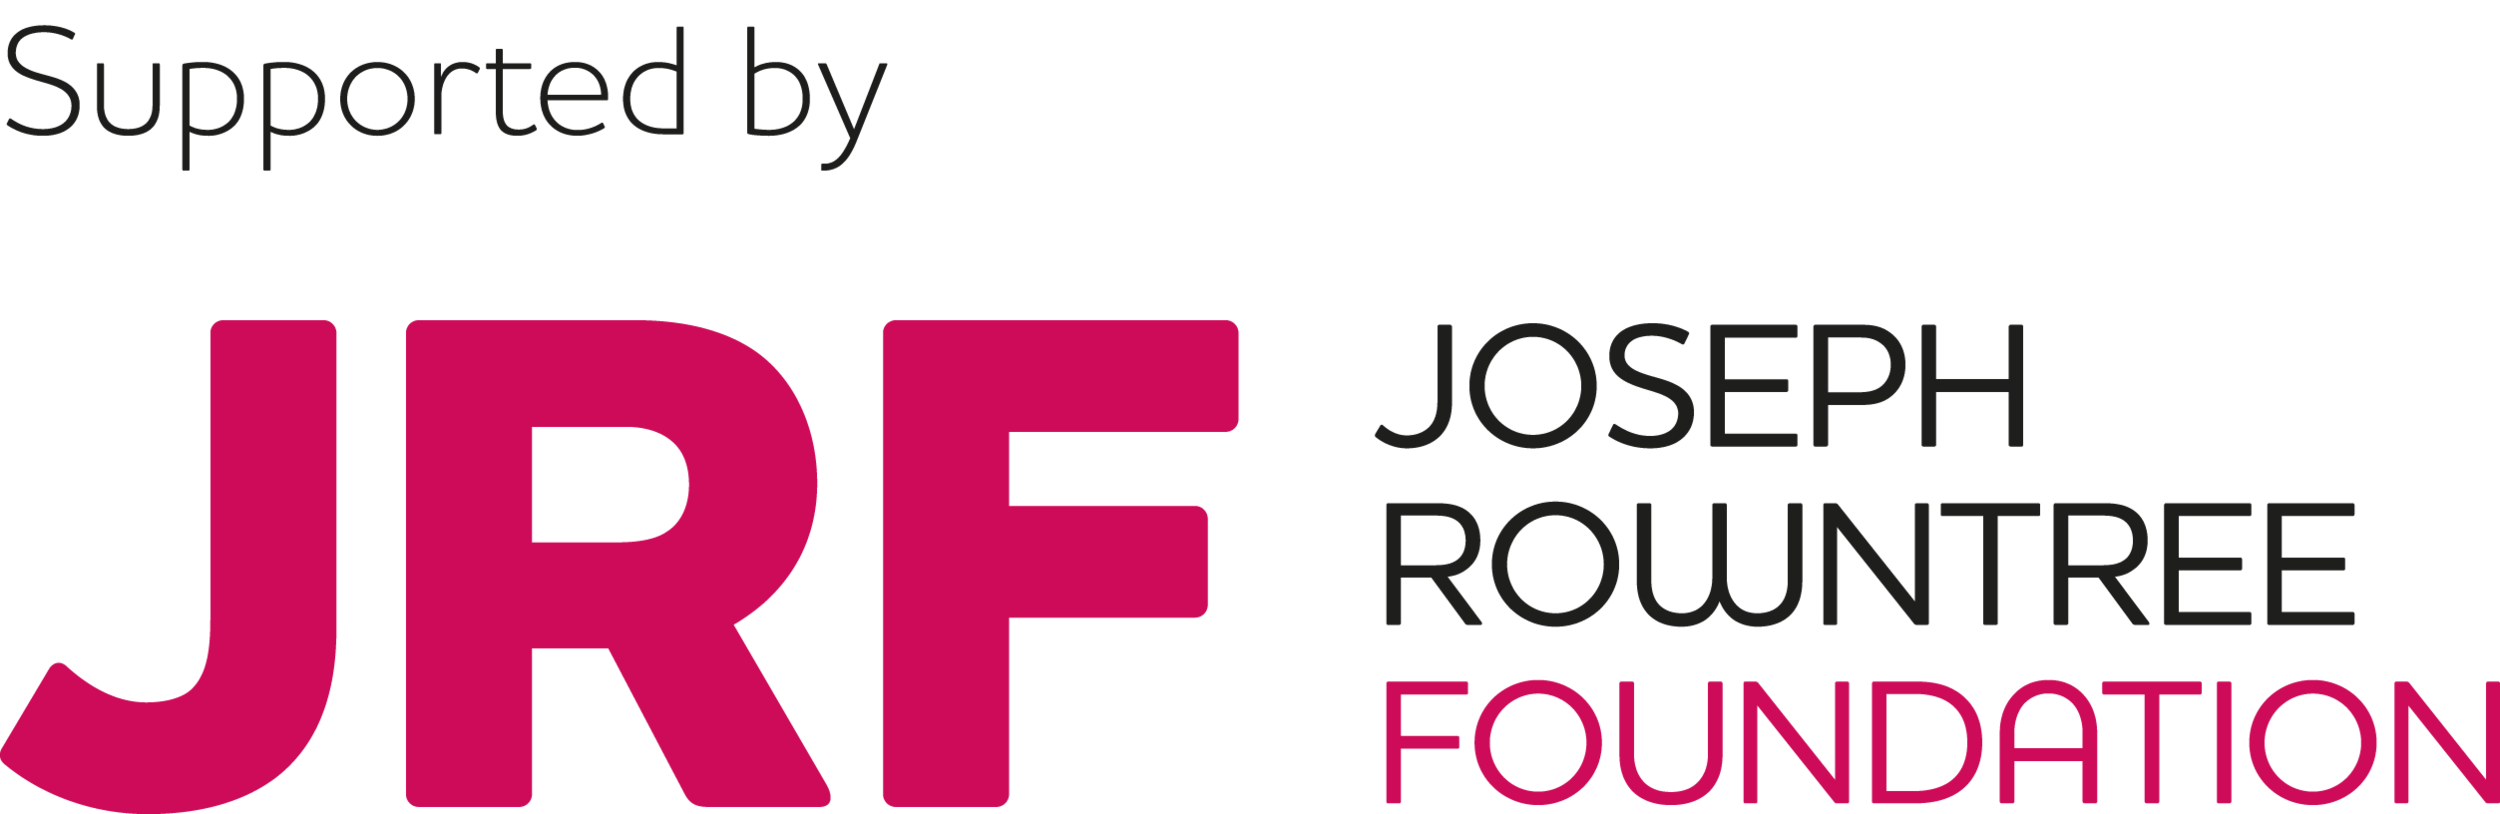 JRF supported by logo (2).png